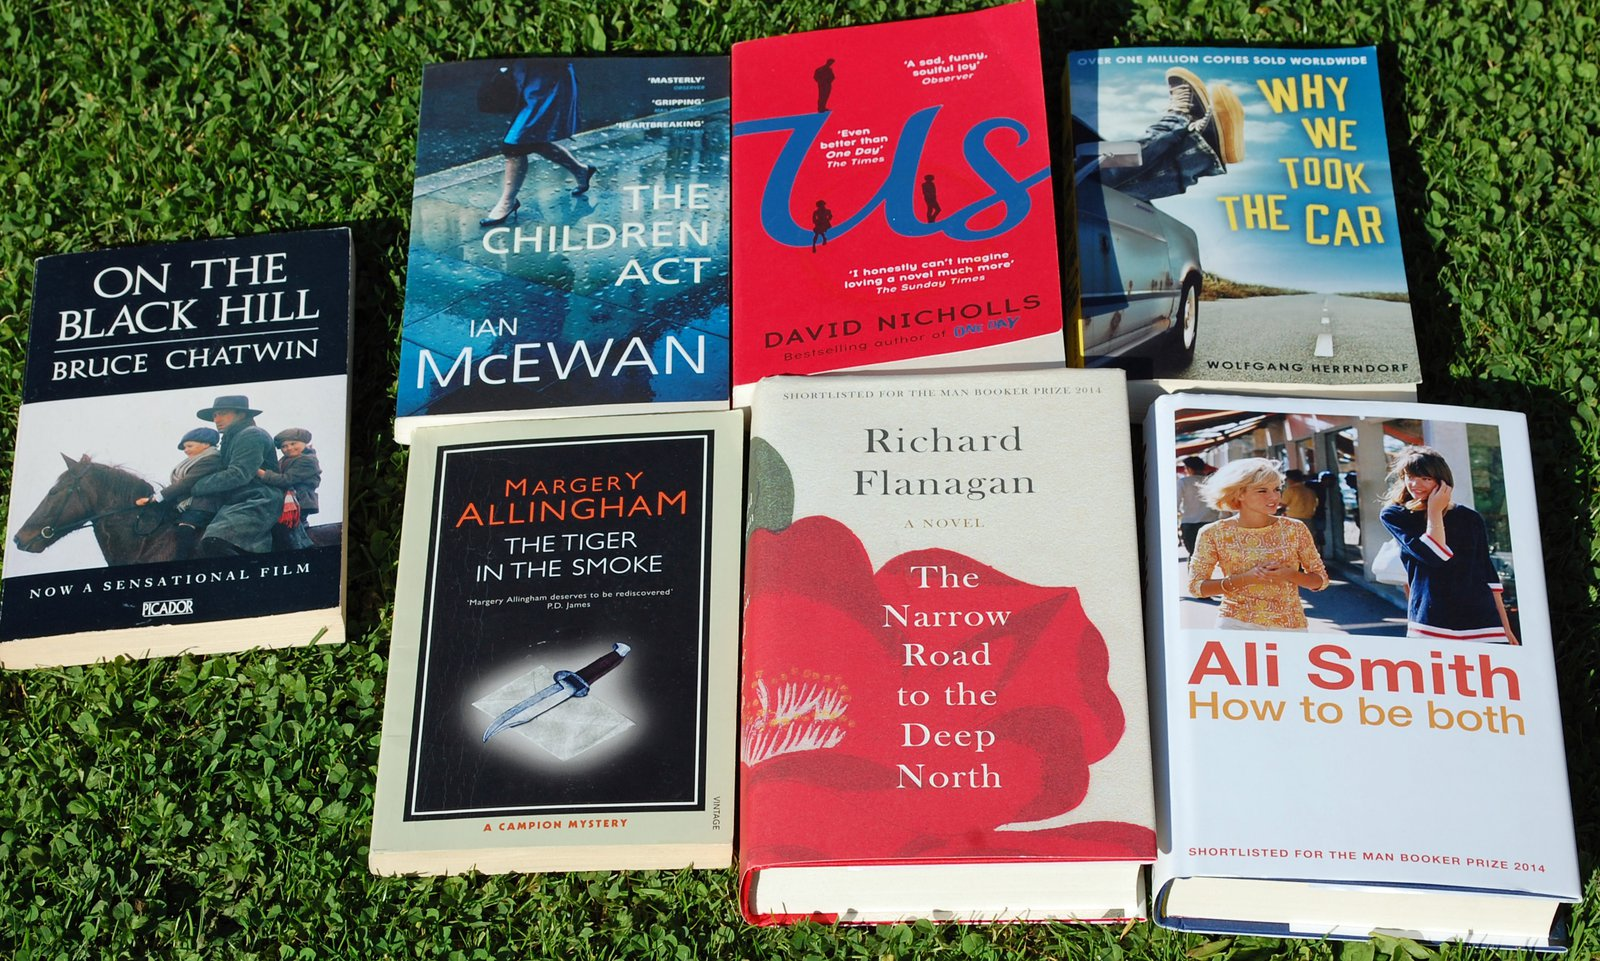 More of the Sophie's reading list from autumn 2015